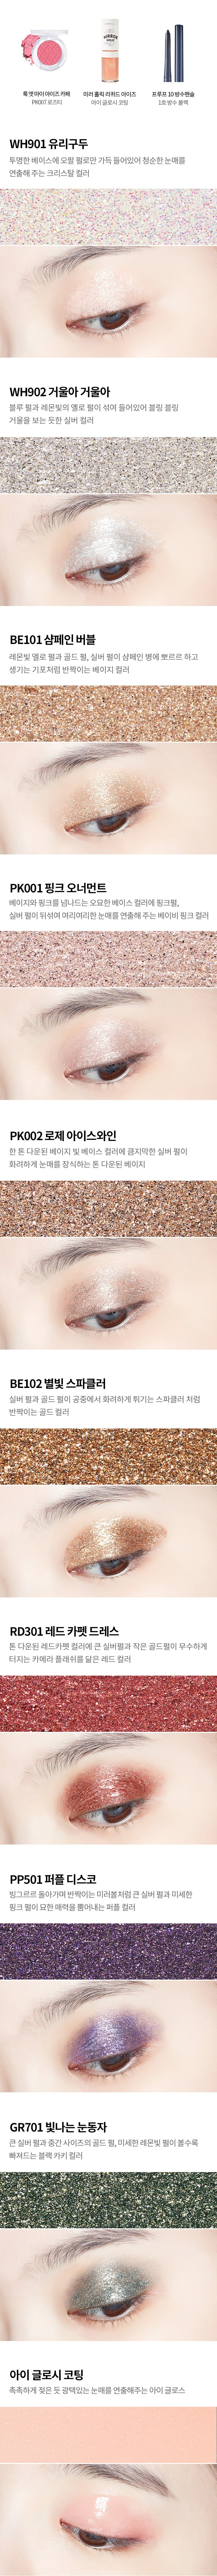 ETUDE HOUSE Mirror Holic Liquid Eyes [RD301 Red Carpet Dress]